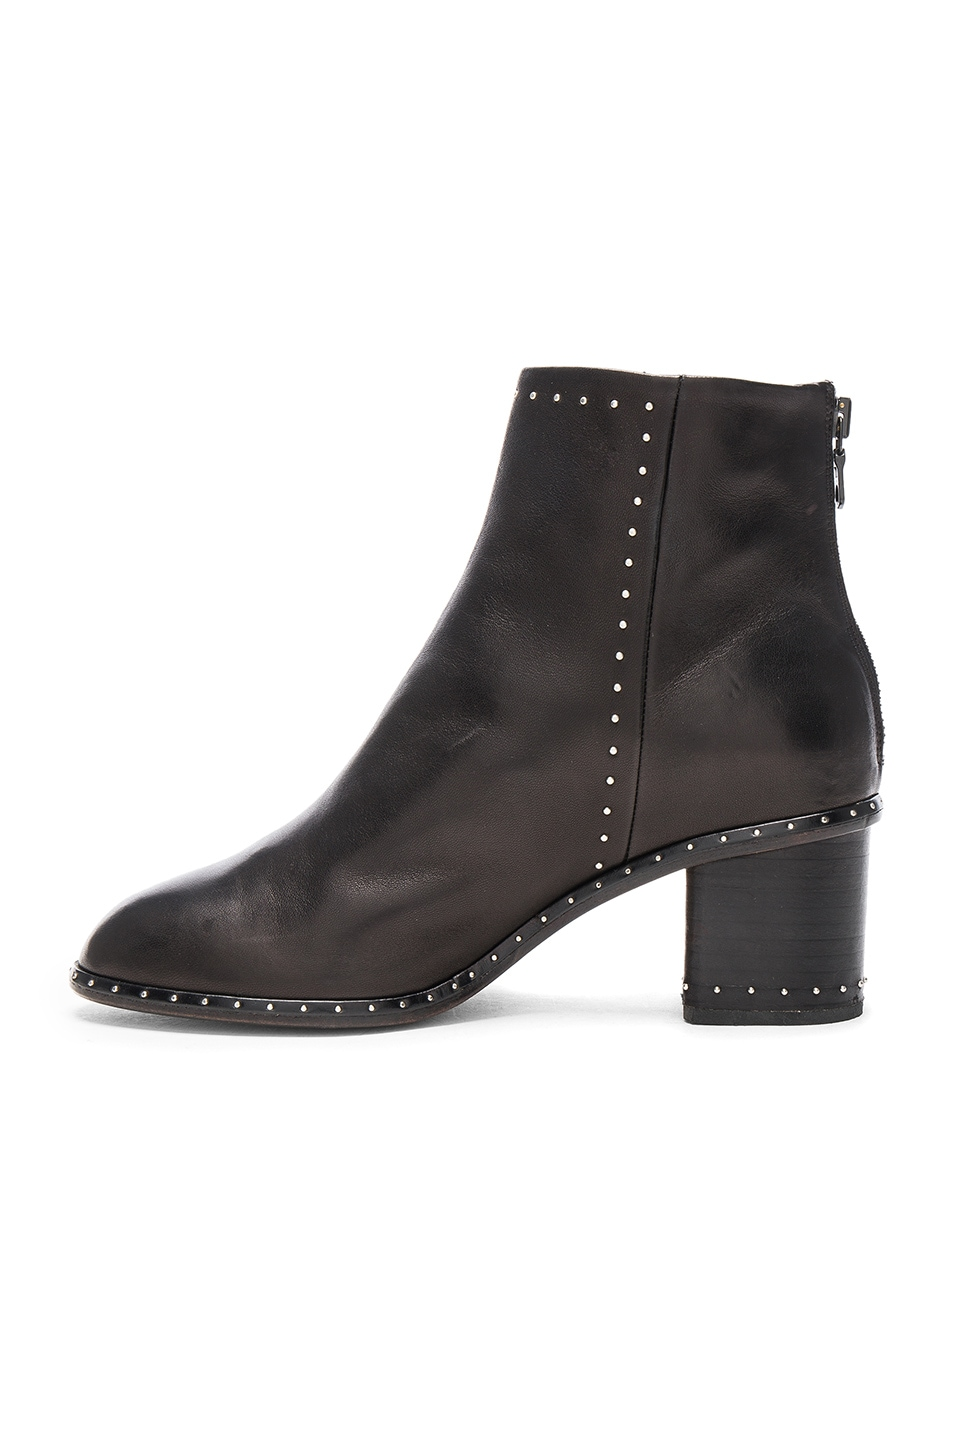 Image 5 of Rag & Bone Leather Willow Stud Boots in Black